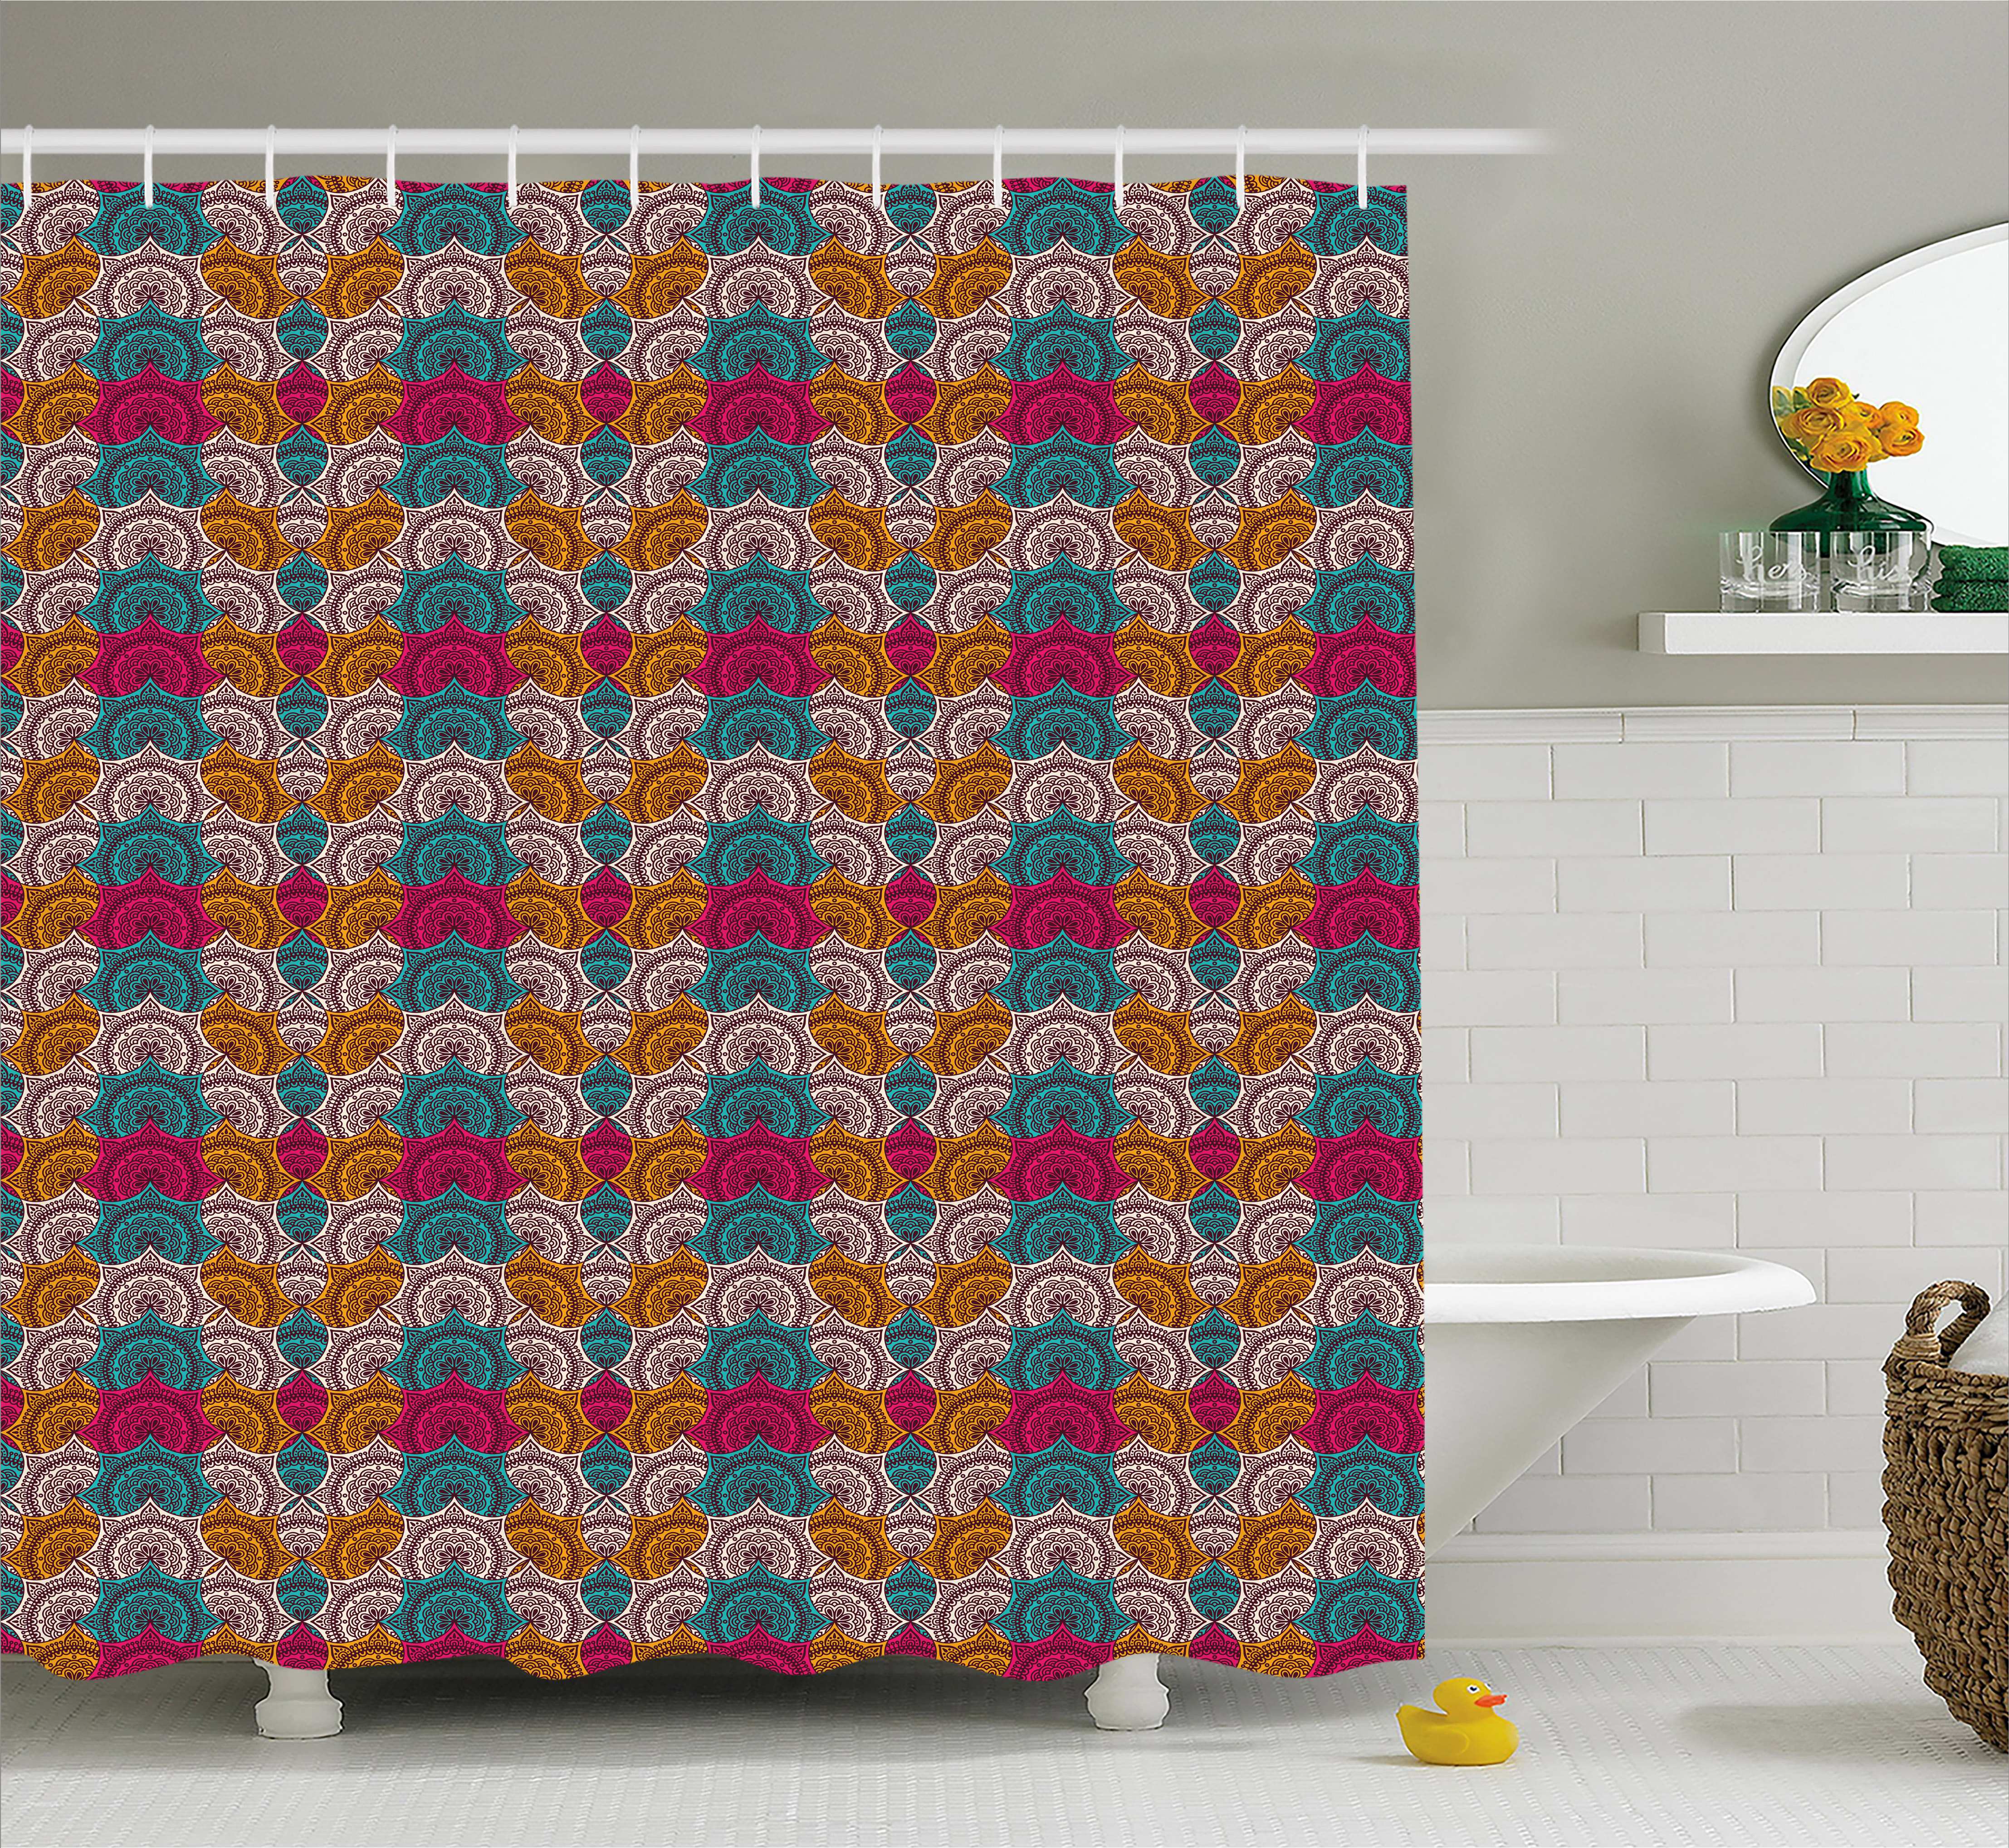 Moroccan Shower Curtain, Lively Colored Ethnic Motifs Overlapping Ornamental Retro Style Tribal Details, Fabric Bathroom Set with Hooks, 69W X 70L Inches, Multicolor, by Ambesonne